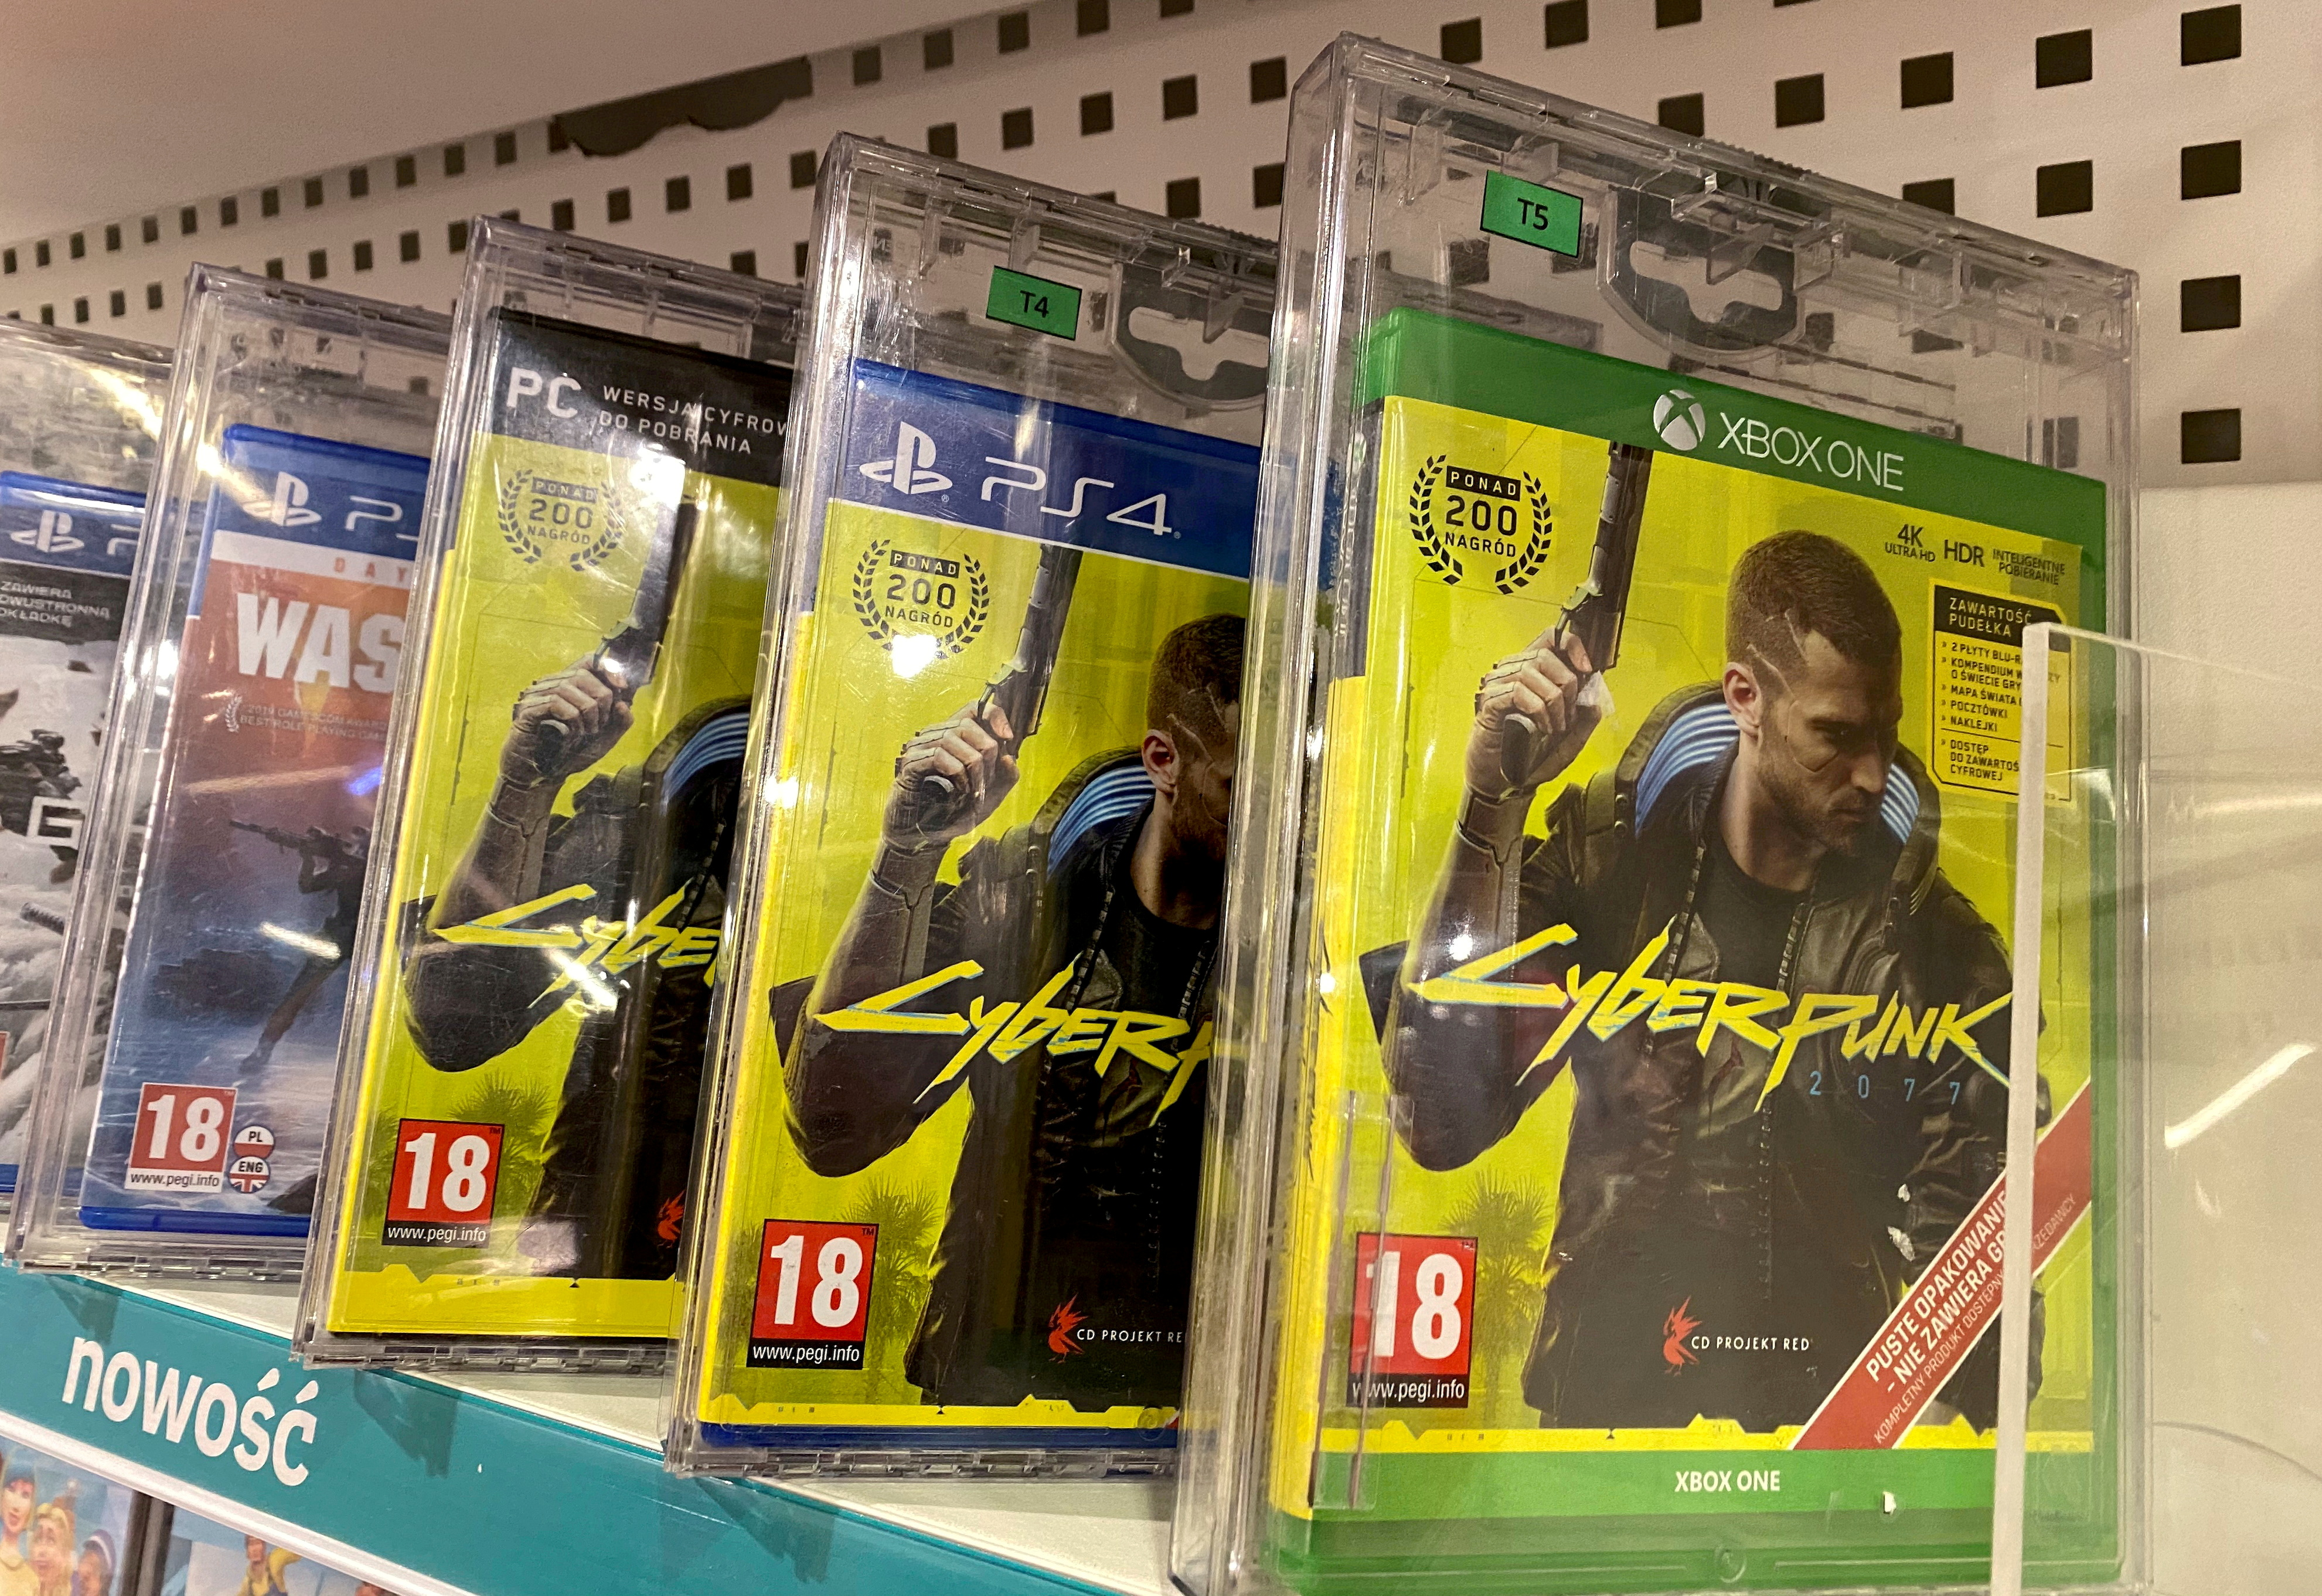 Boxes with CD Projekt's game Cyberpunk 2077 are displayed in Warsaw, Poland, Dec. 14, 2020. REUTERS/Kacper Pempel/File Photo